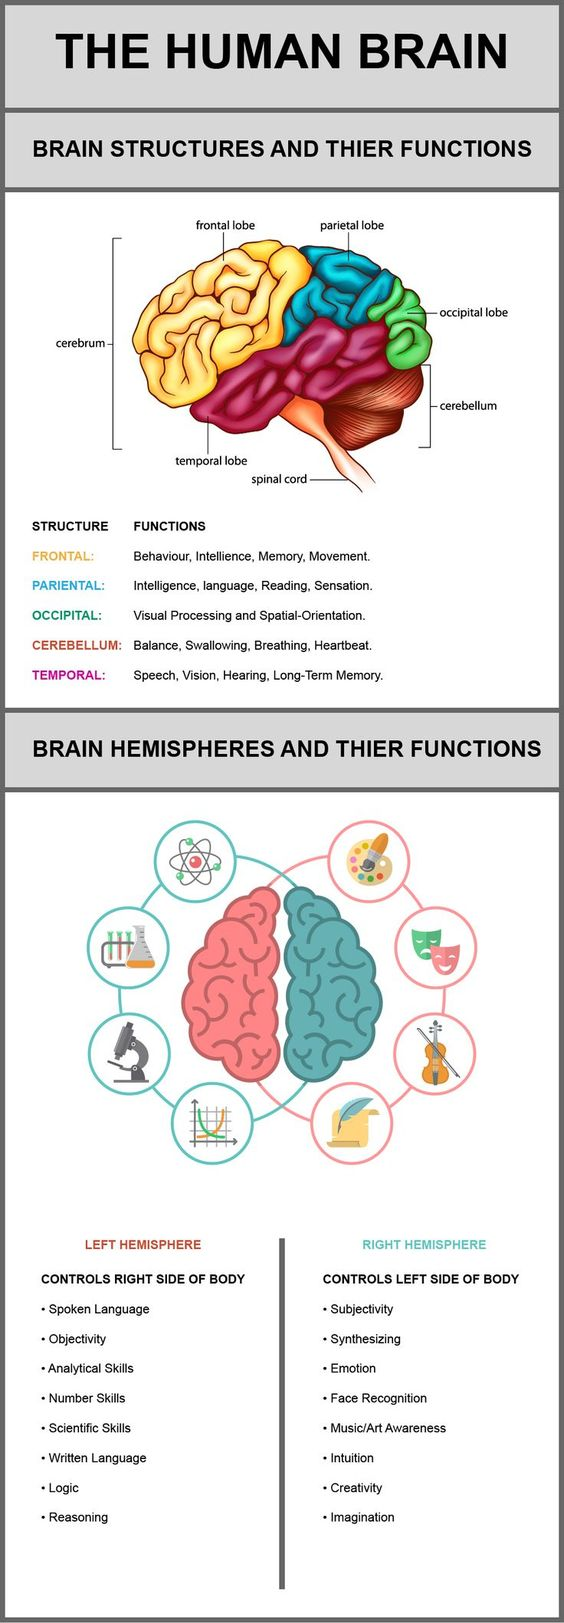 hemispheres of the brain essay The hemispheres exhibit strong bilateral symmetry regariding structure as well as function  left brain vs right brain diffencom diffen llc,.